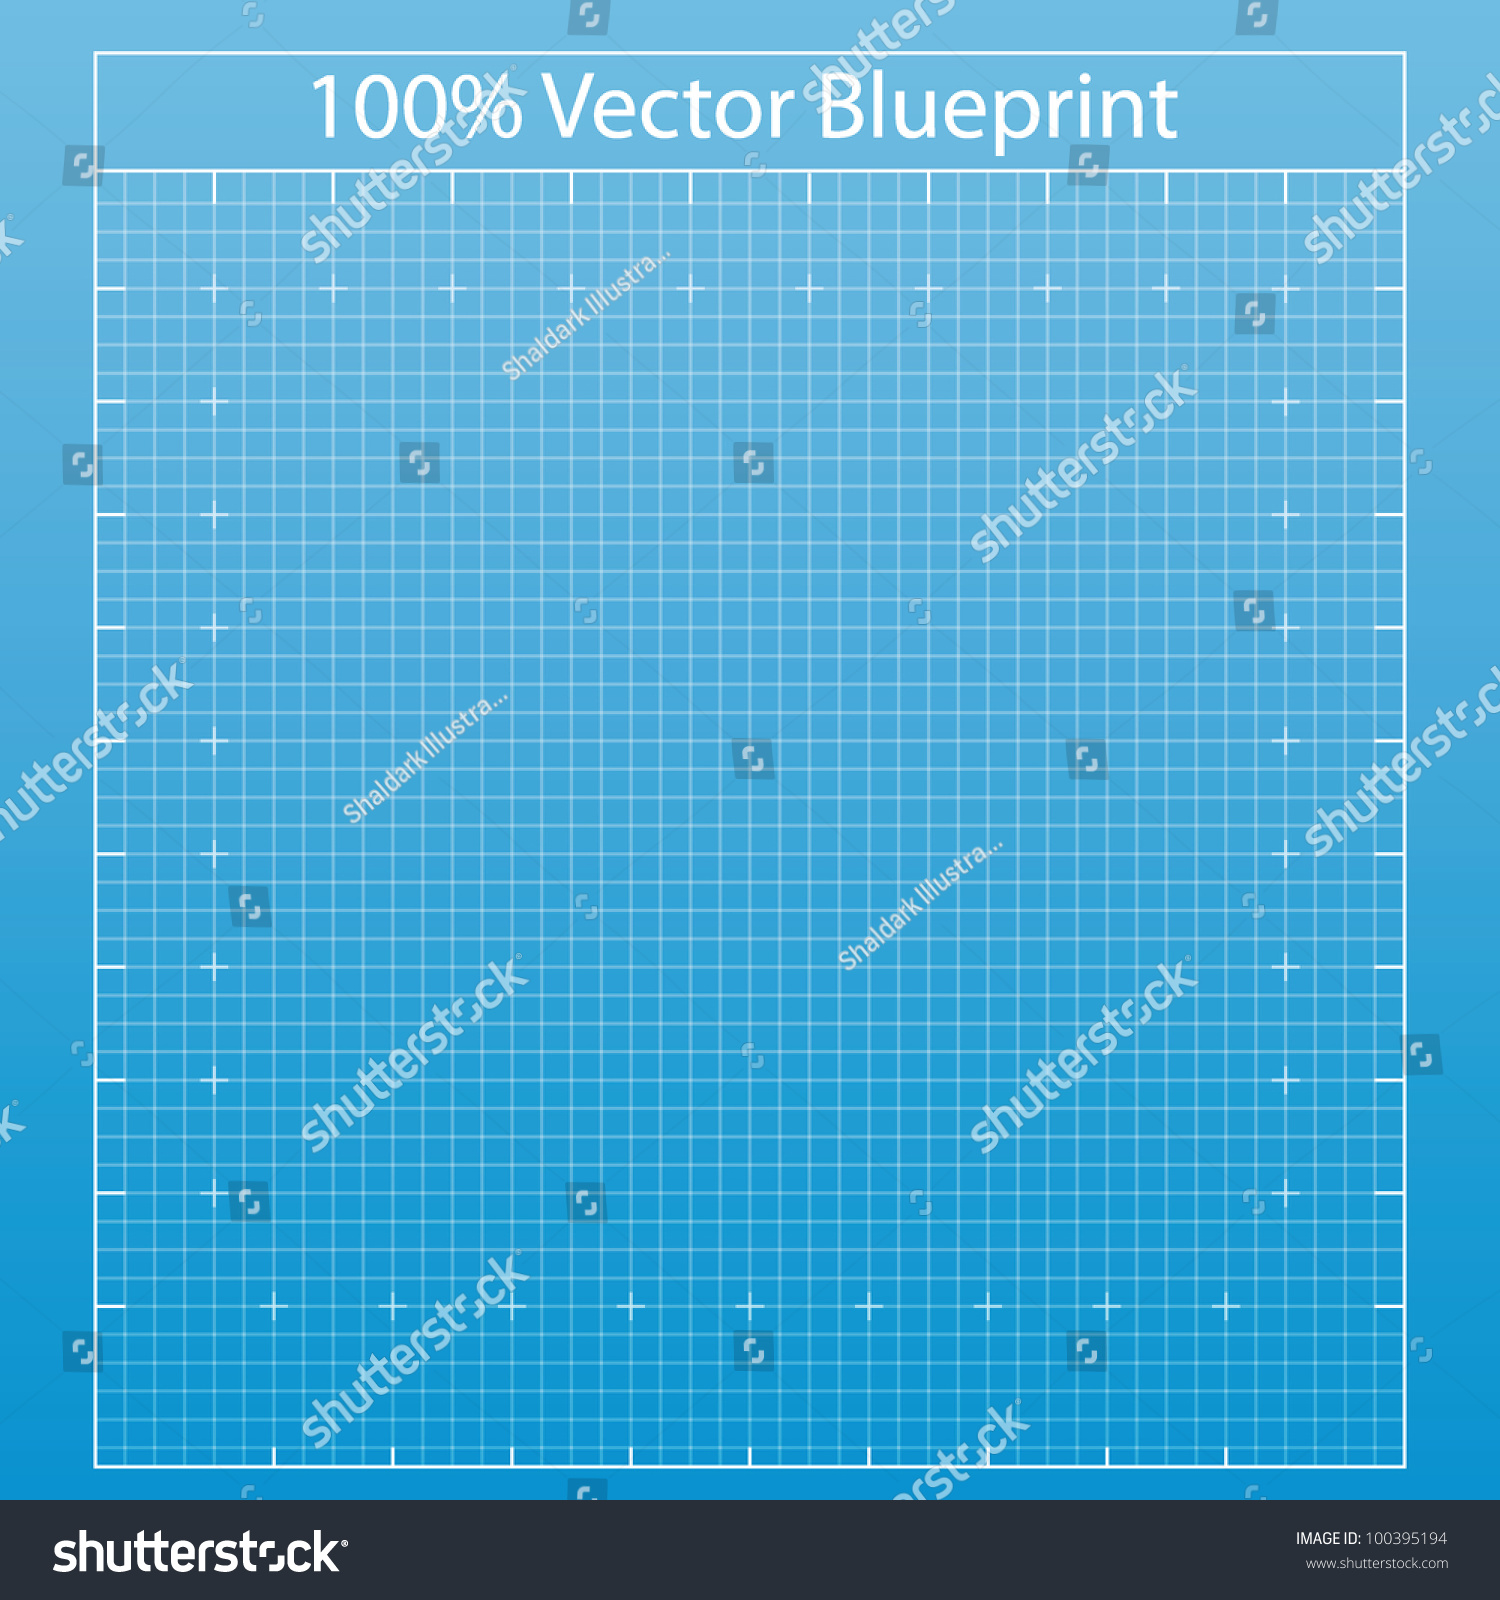 Blueprint background texture stock vector 100395194 shutterstock blueprint background texture malvernweather Images